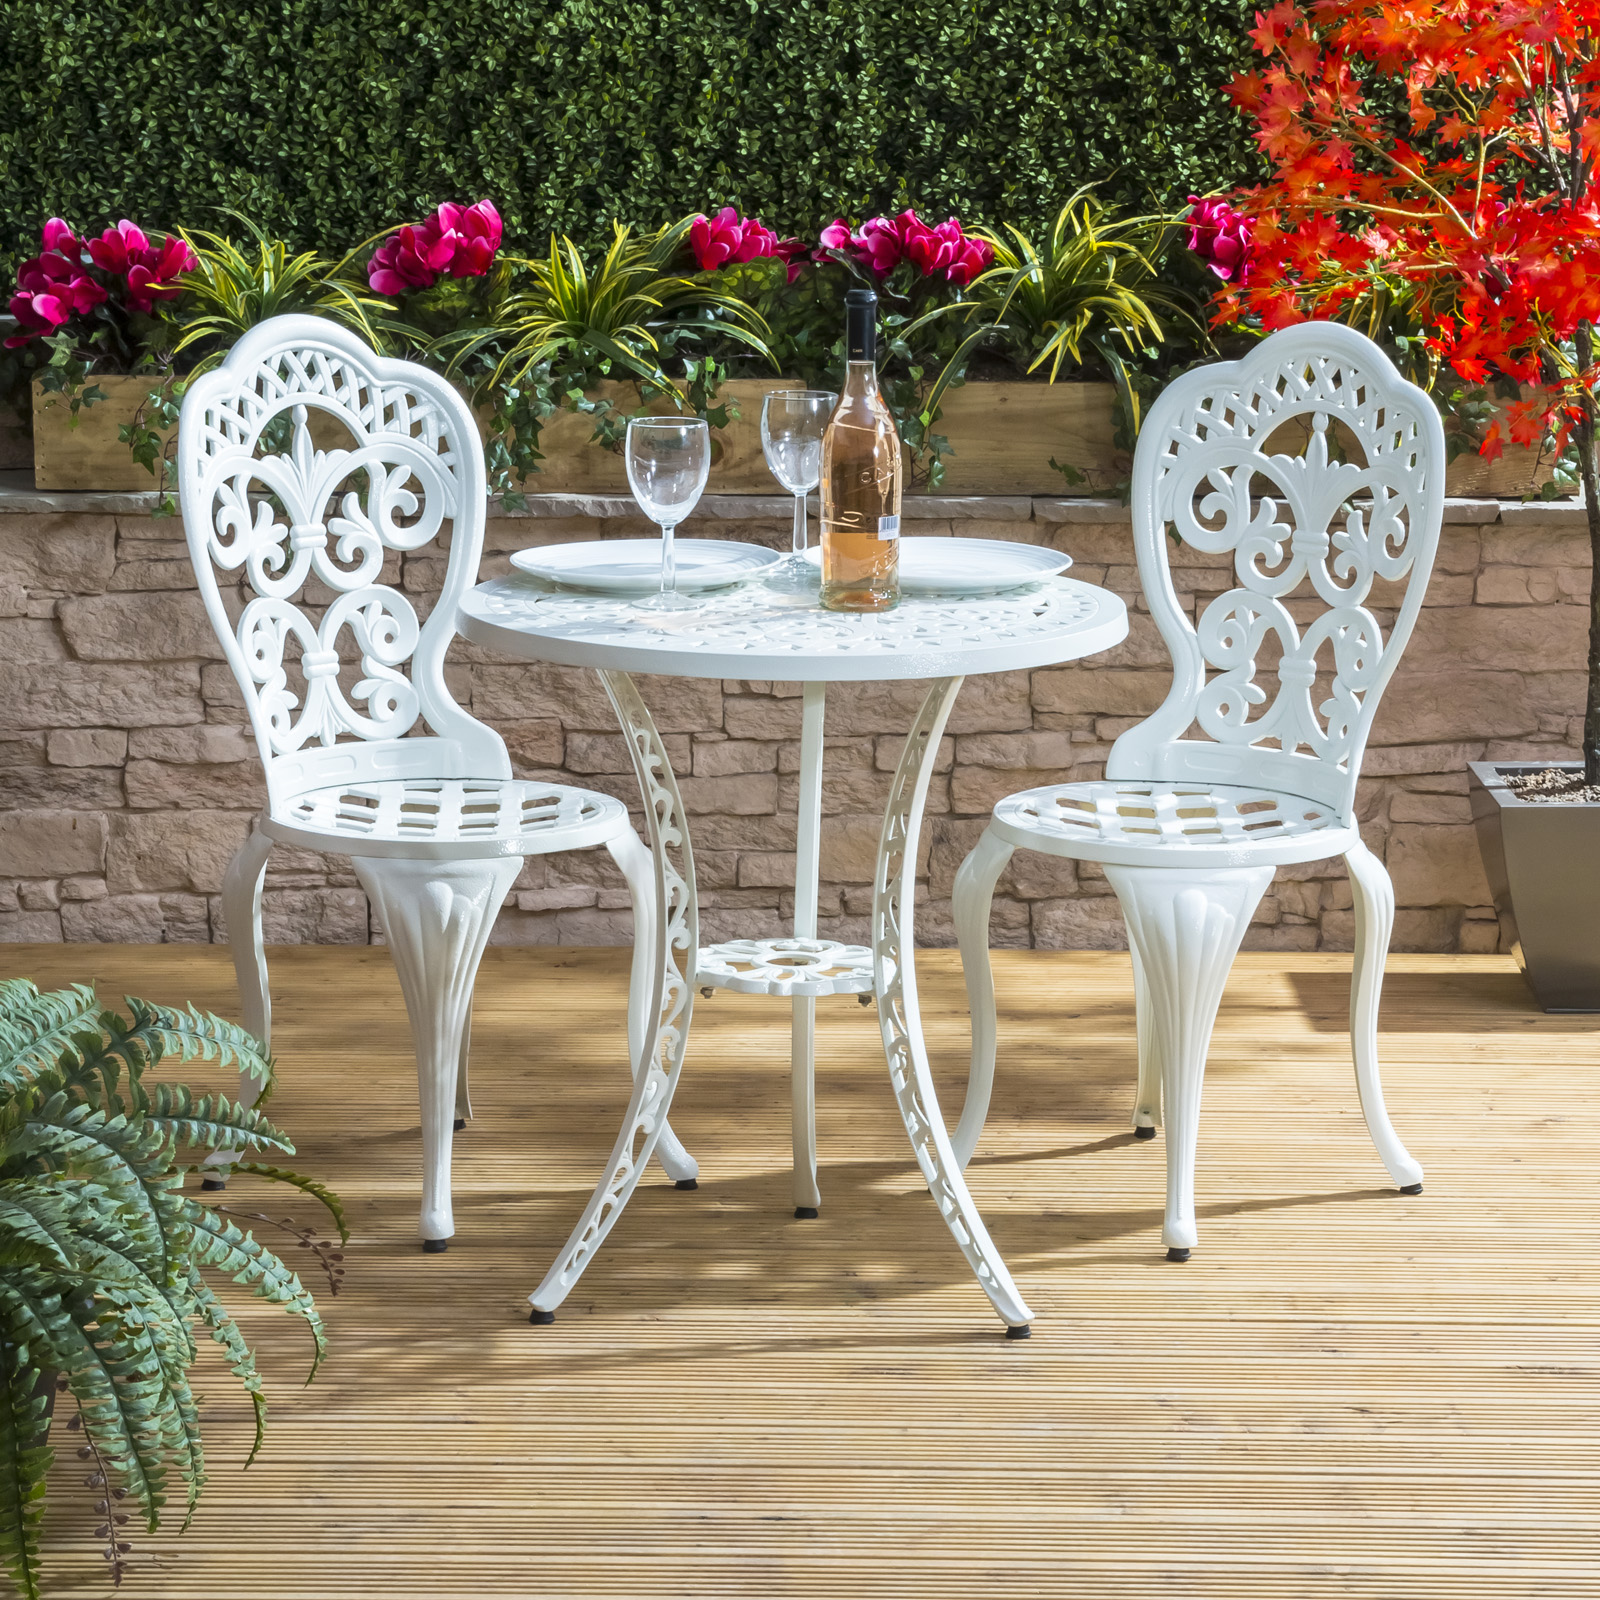 Alfresia garden furniture patio cast aluminium caf bistro for Garden furniture table and chairs